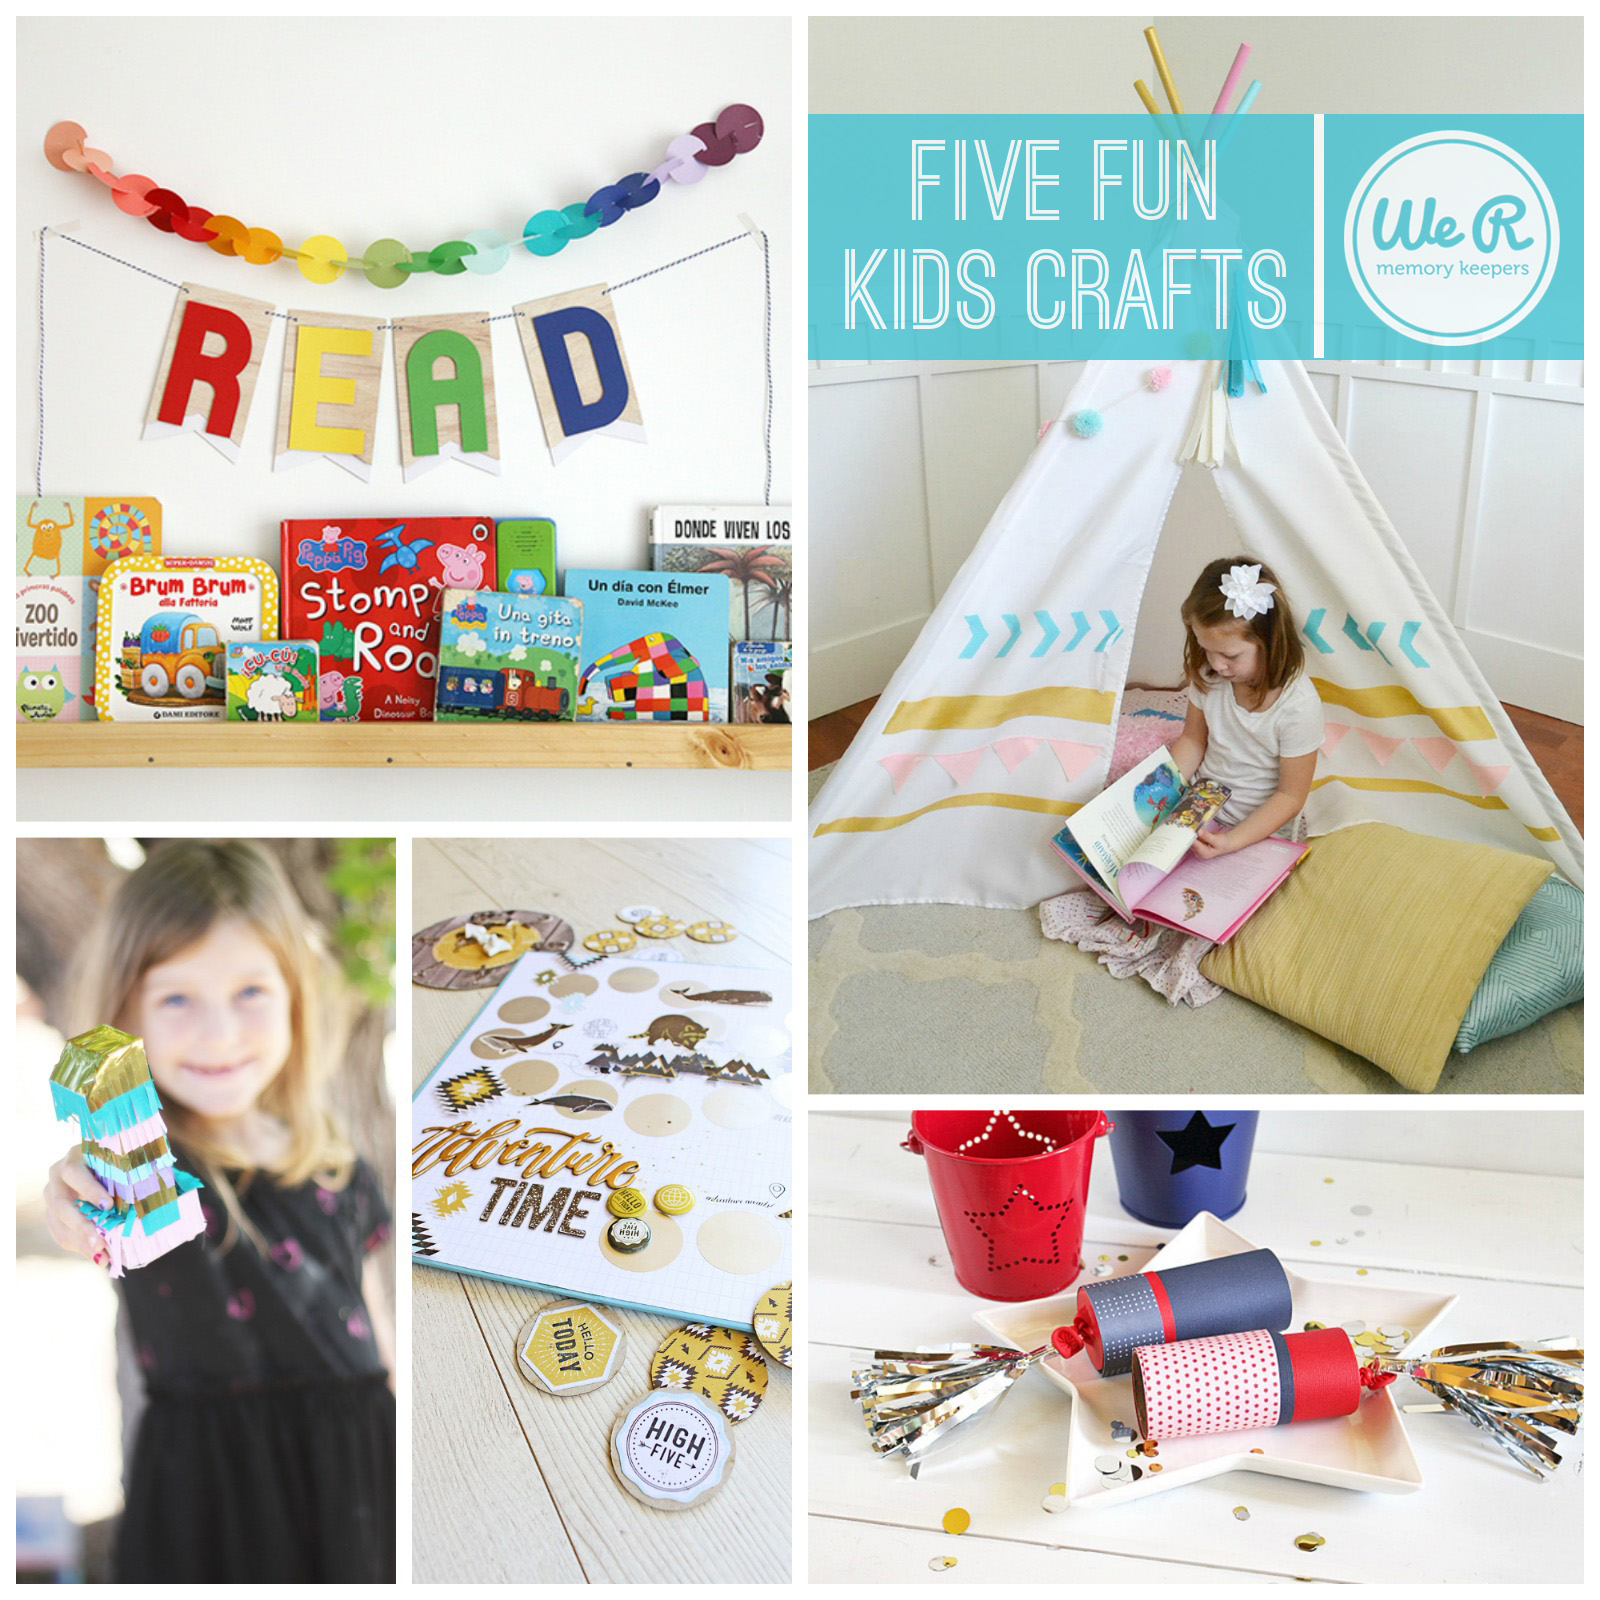 5 Fun Kids Crafts by We R Memory Keepers